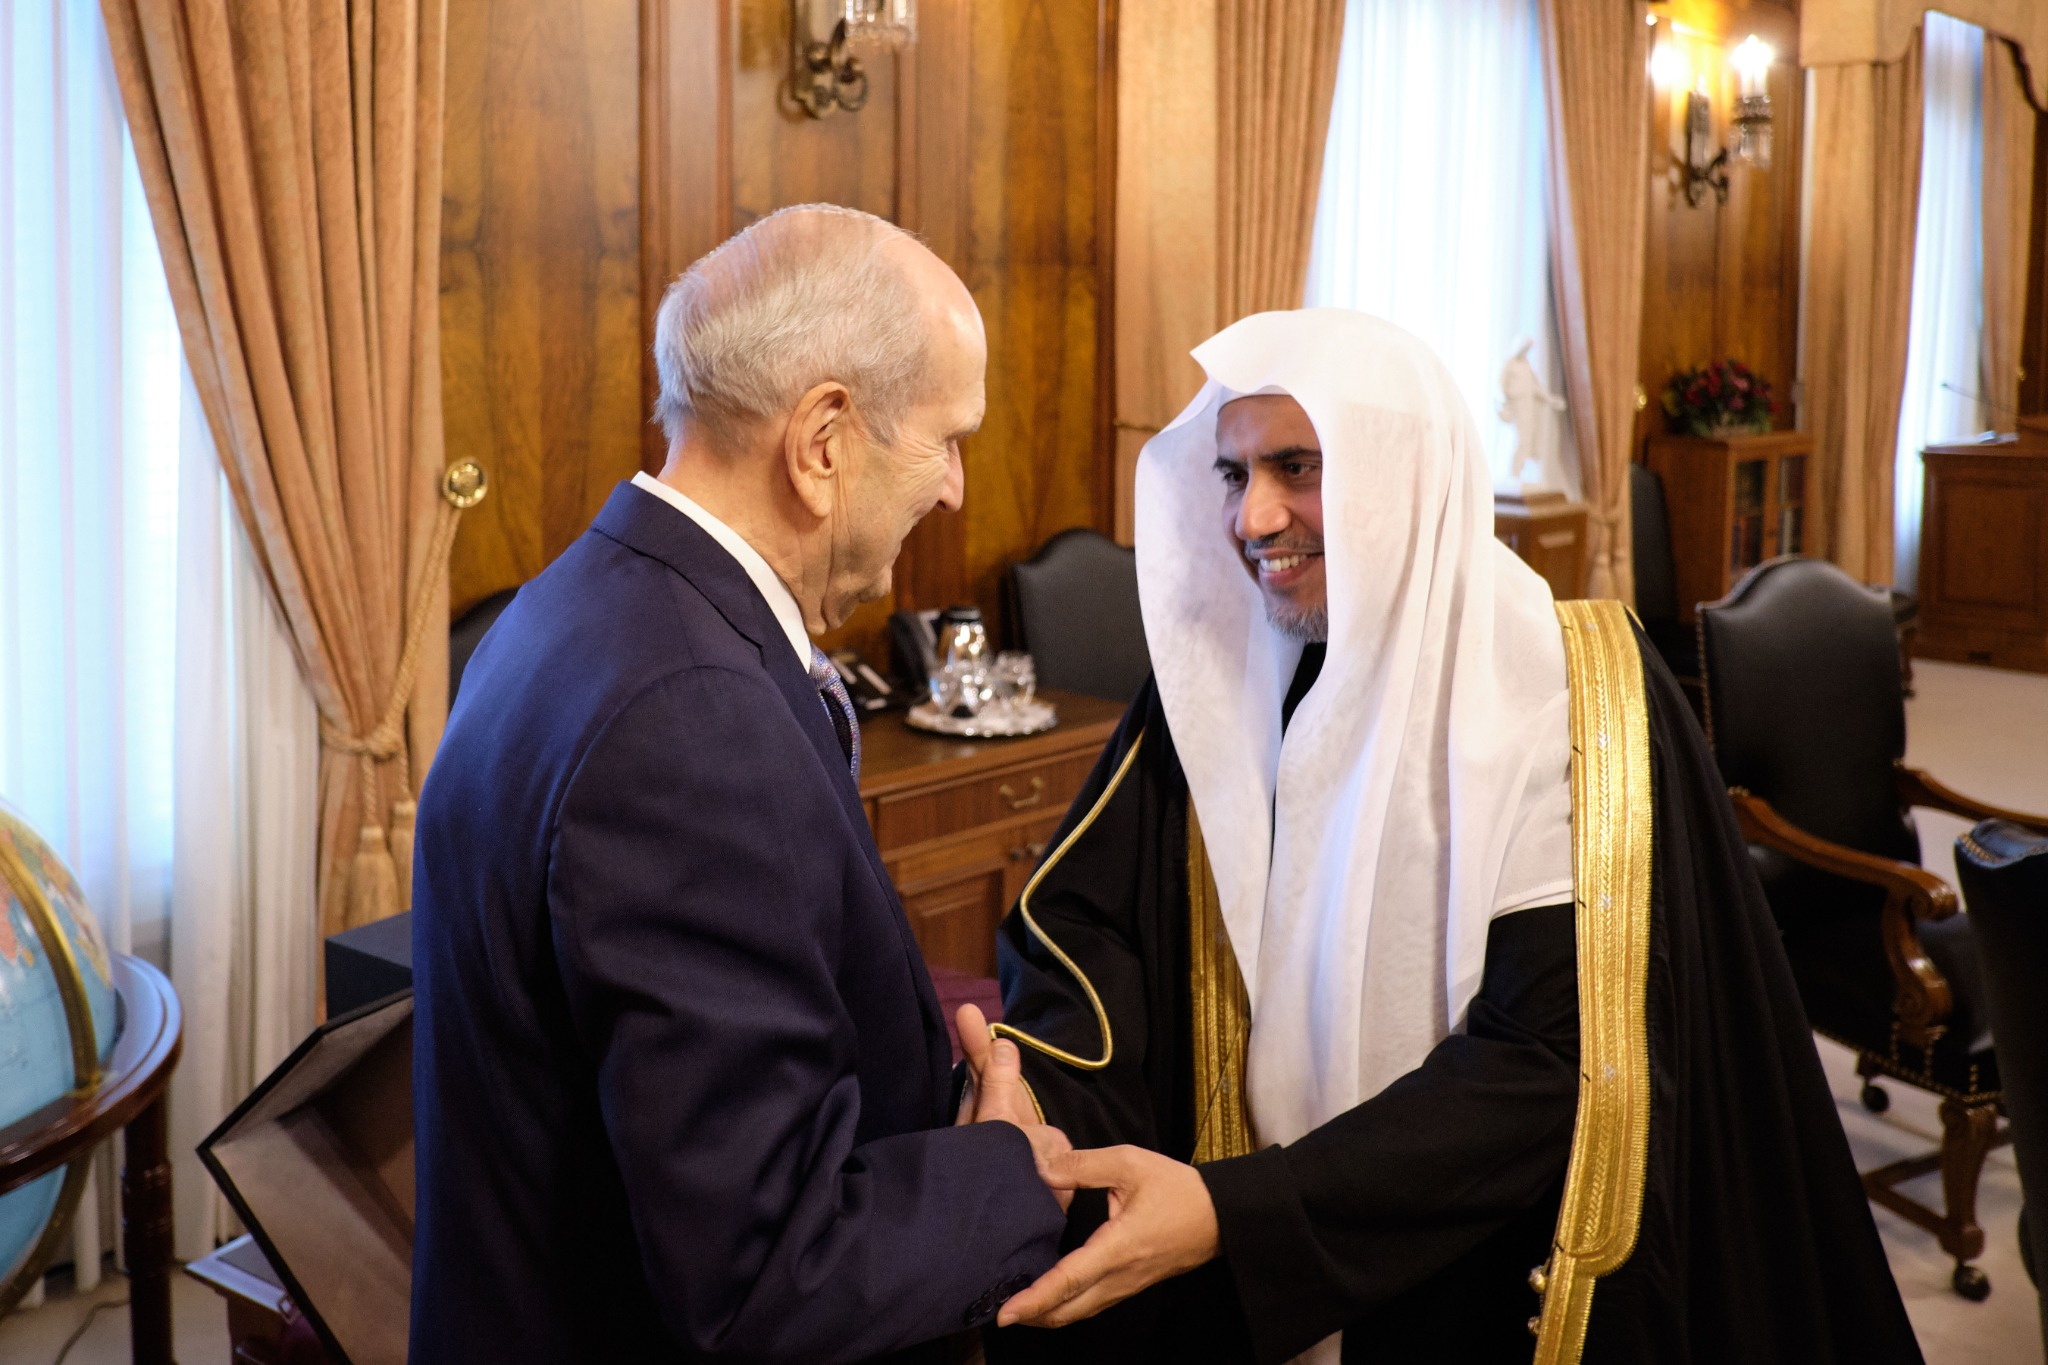 President Russell M. Nelson of The Church of Jesus Christ of Latter-day Saints greets His Excellency Dr. Mohammad Al-Issa, secretary-general of the Muslim World League, on Nov. 5, 2019.